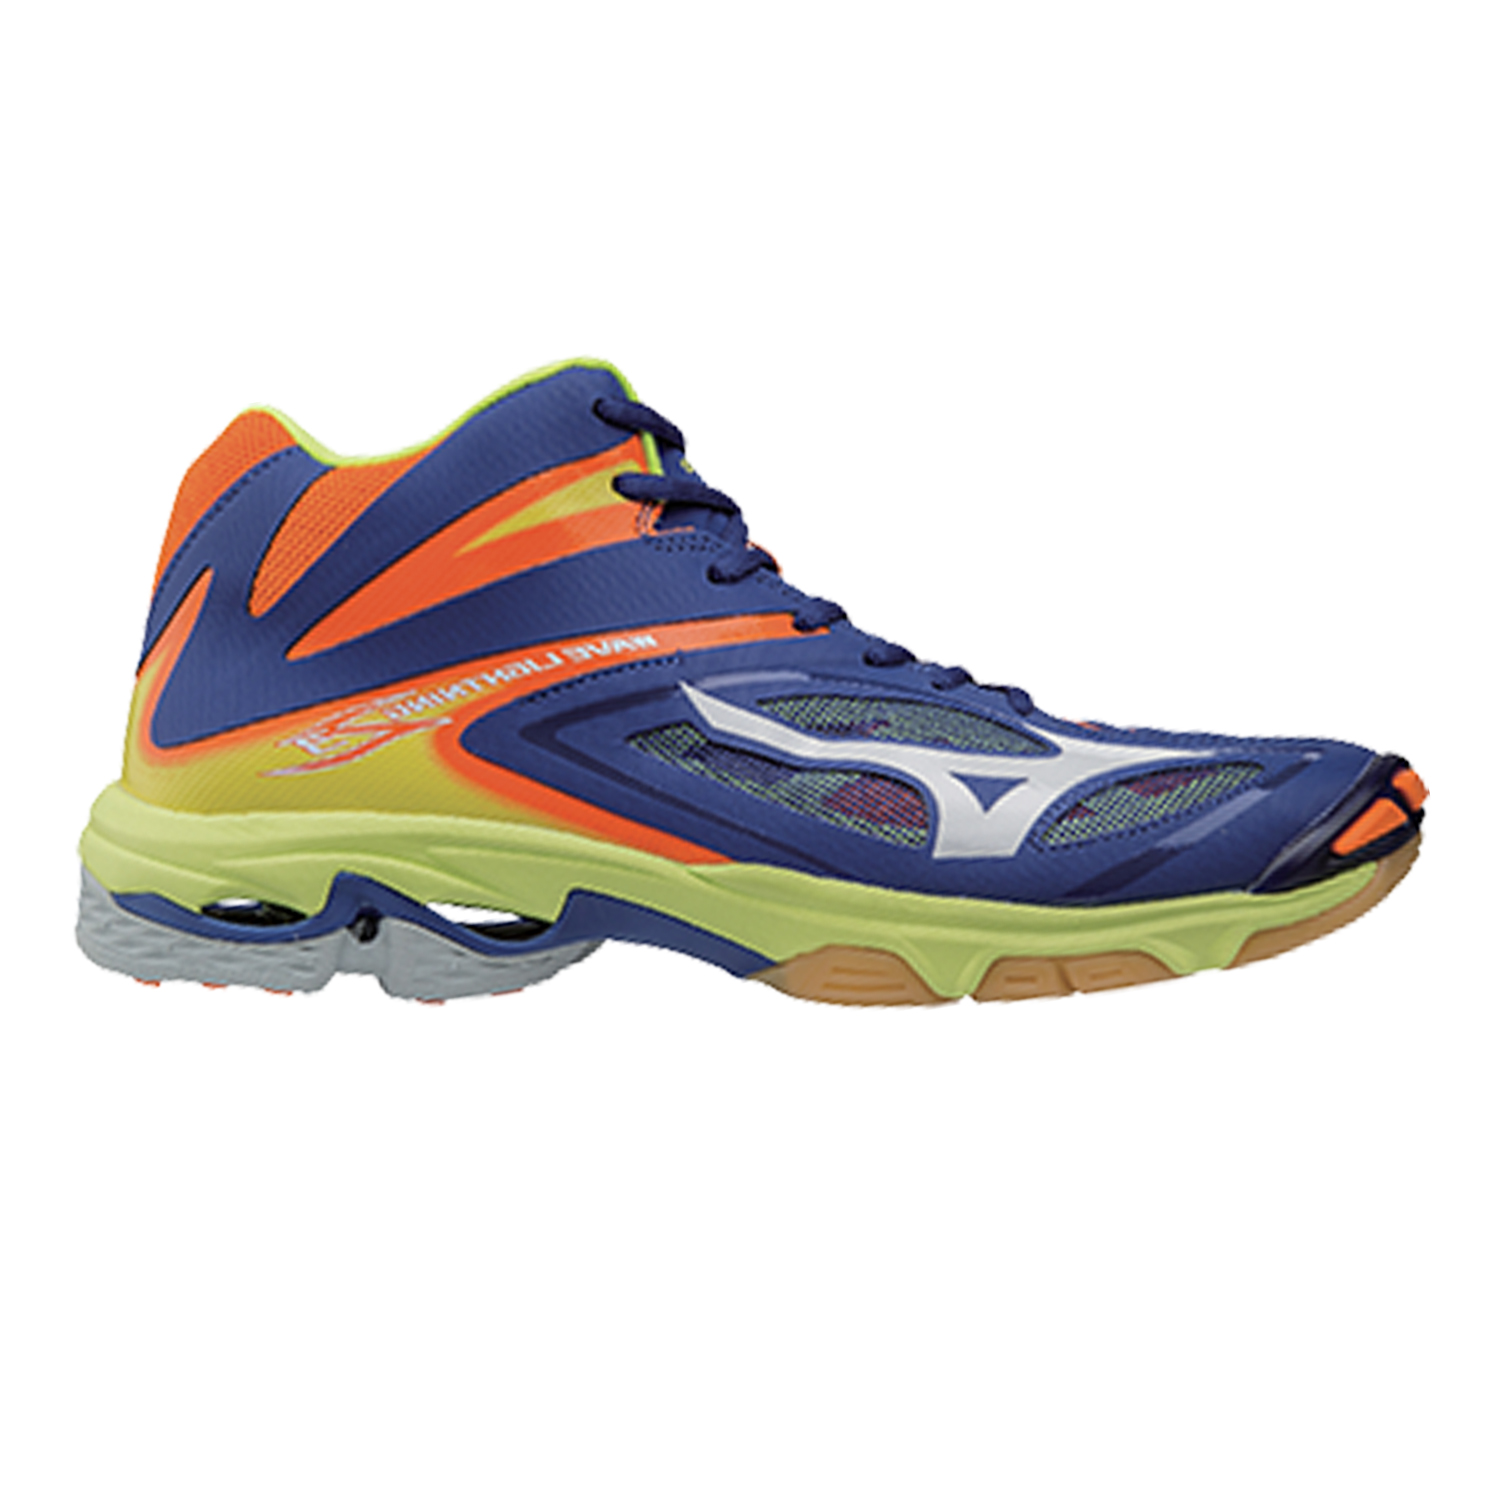 The Shoe Man Volleyball Wave Lightning Z3 Mid